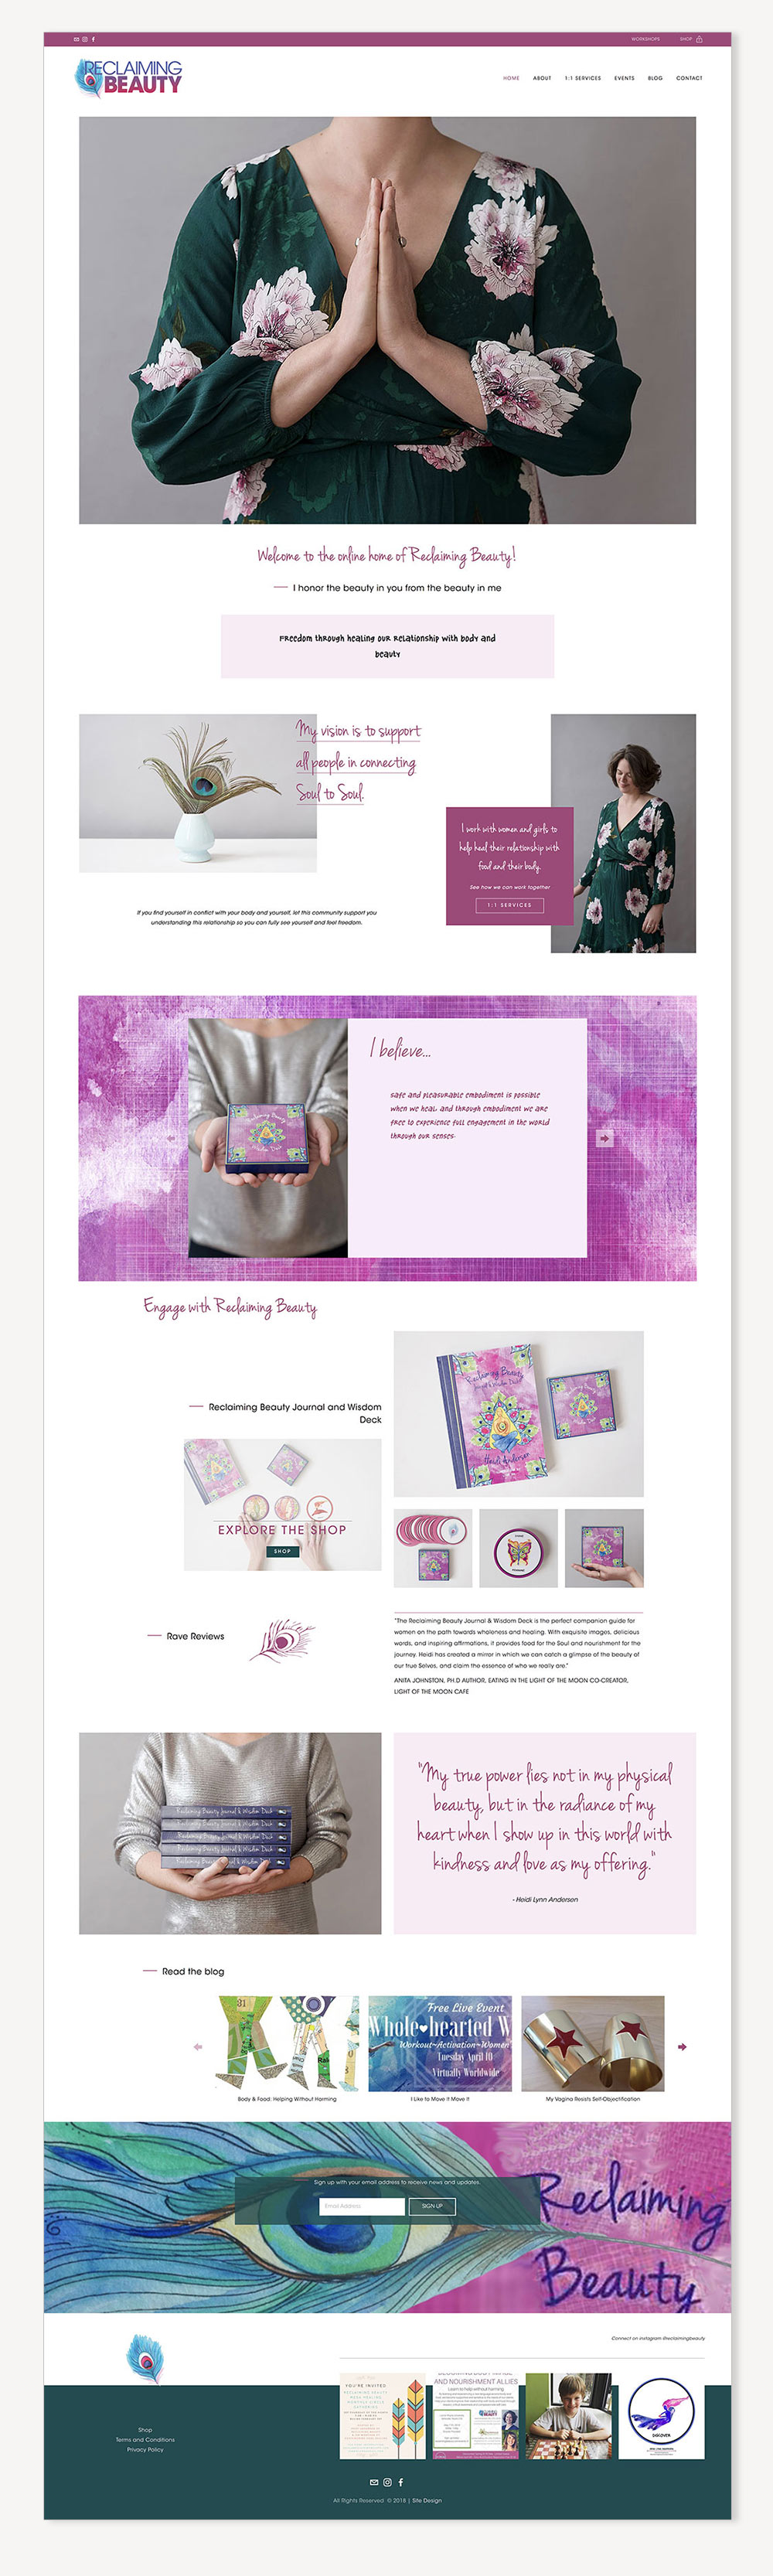 Reclaiming Beauty home page website design | Squarespace website design by Jodi Neufeld Design